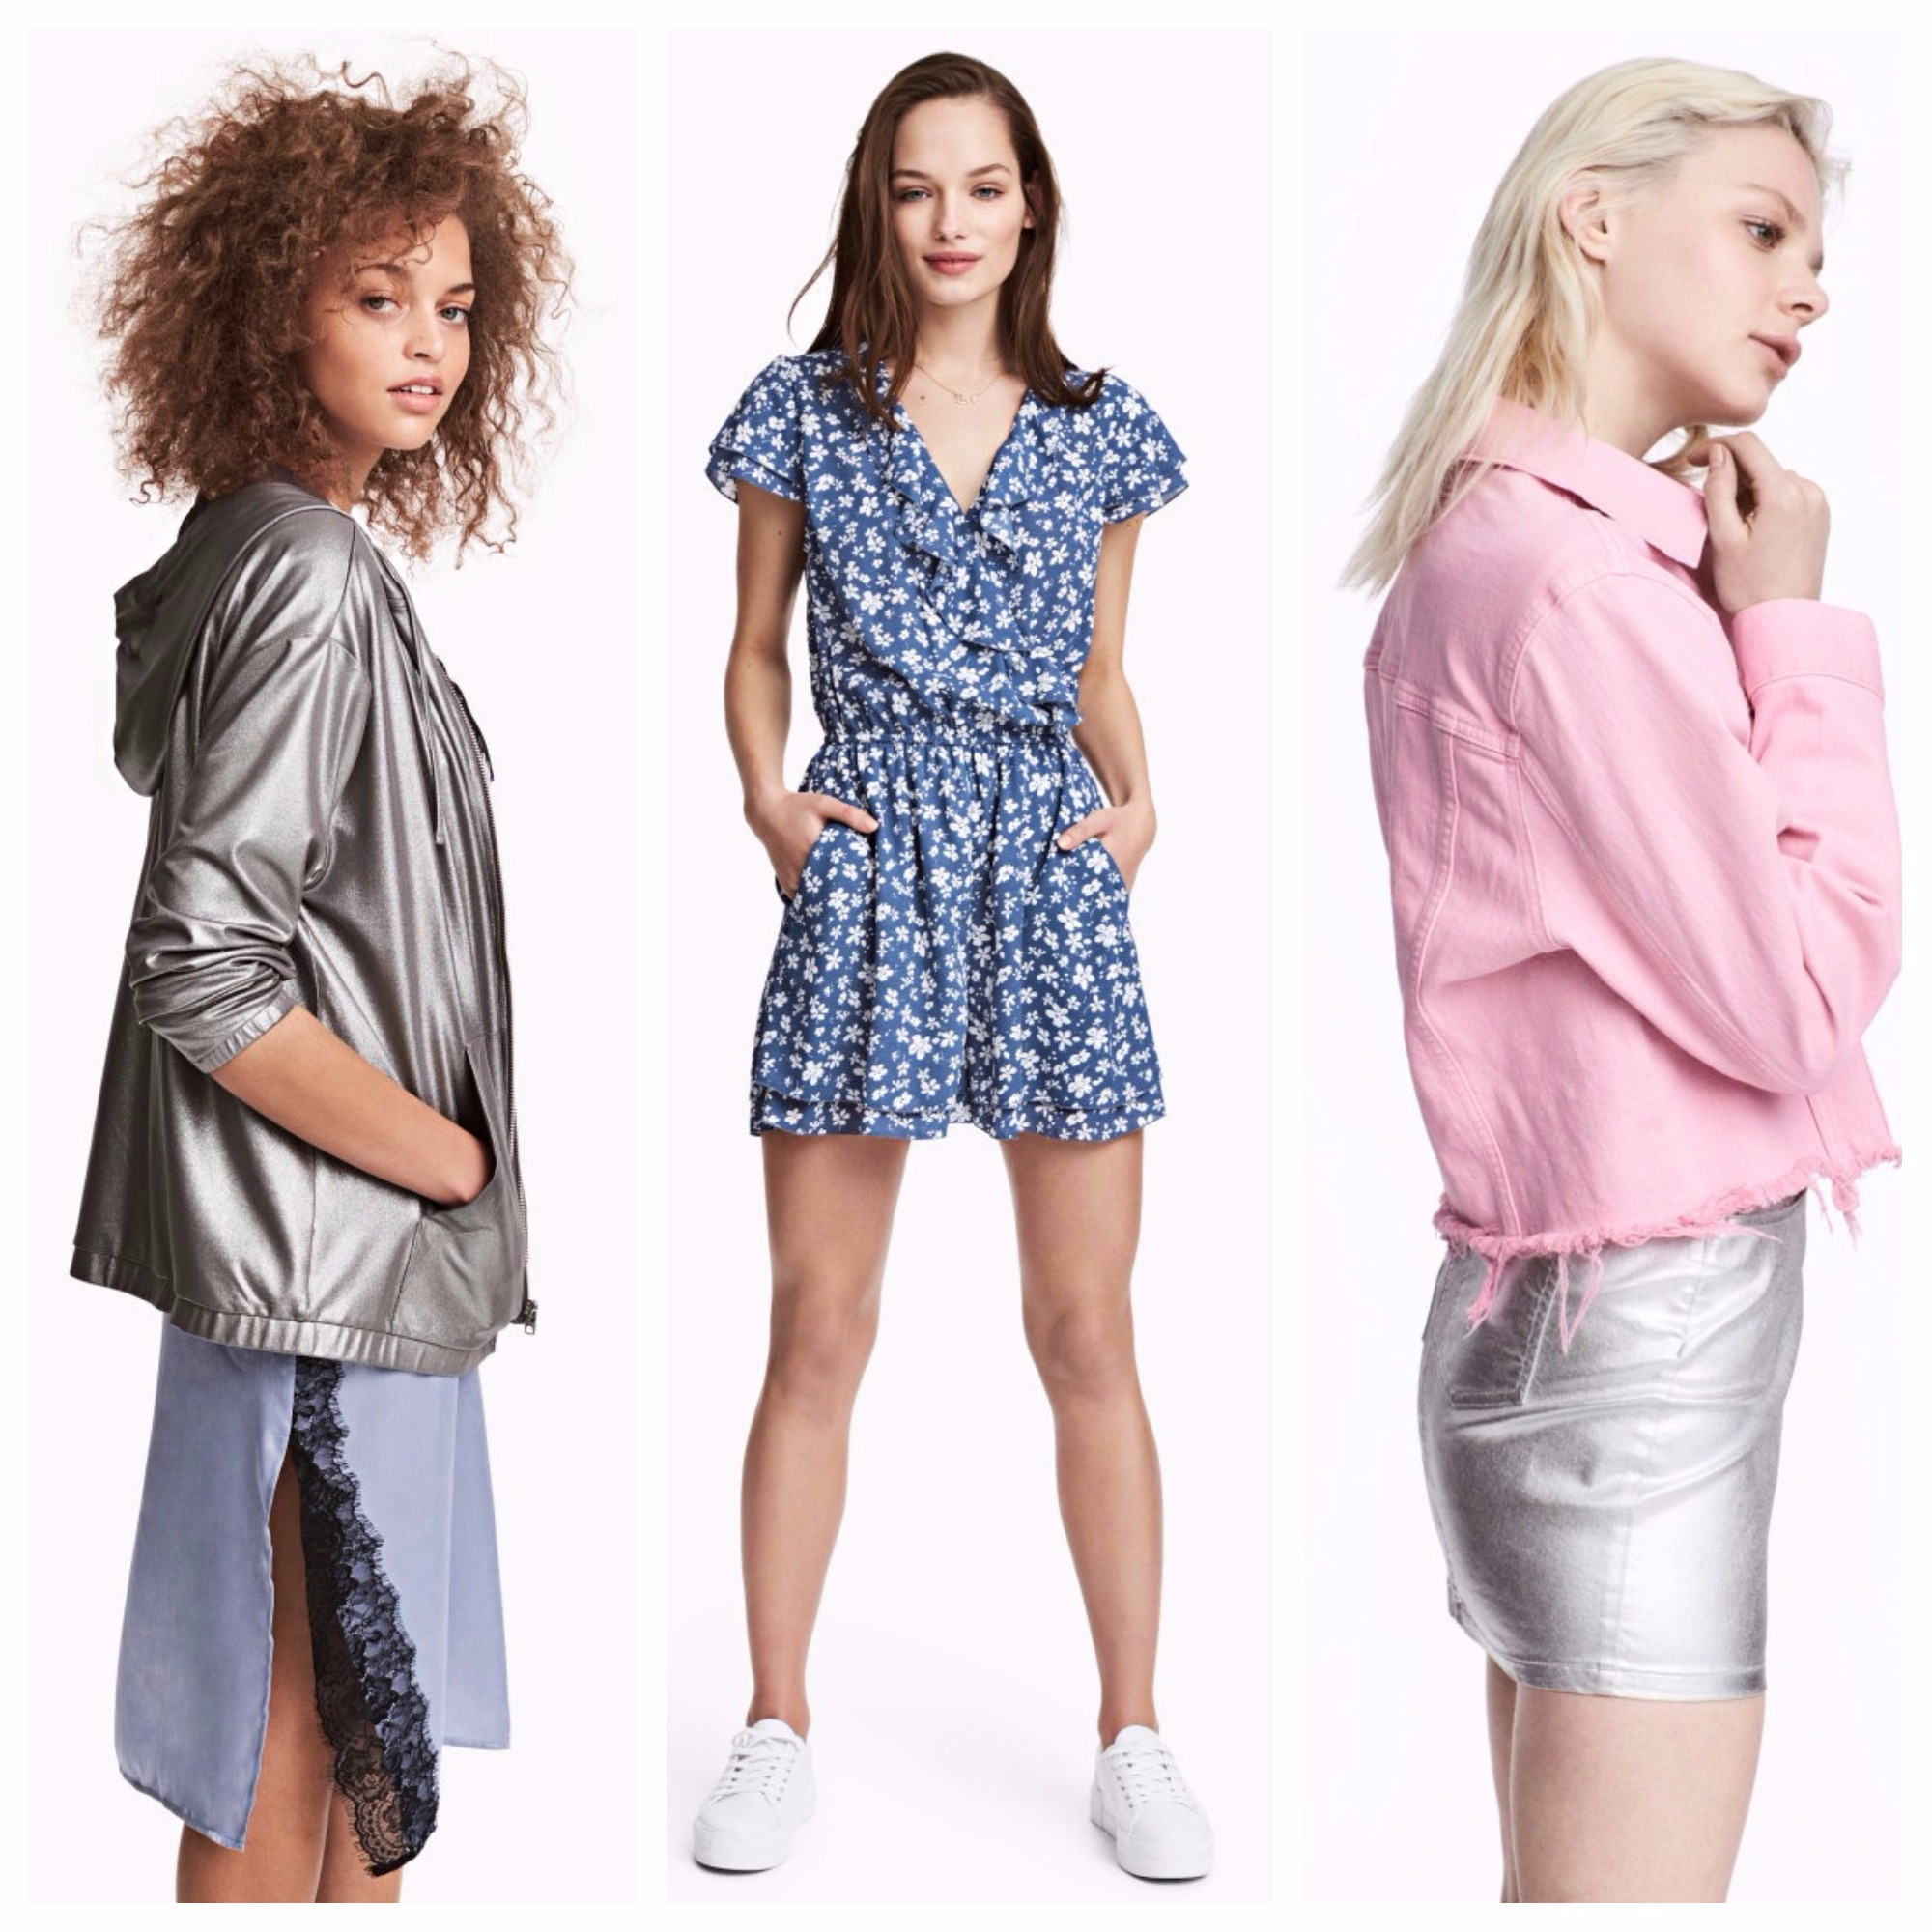 17 things we need from H&M's Memorial Day sale